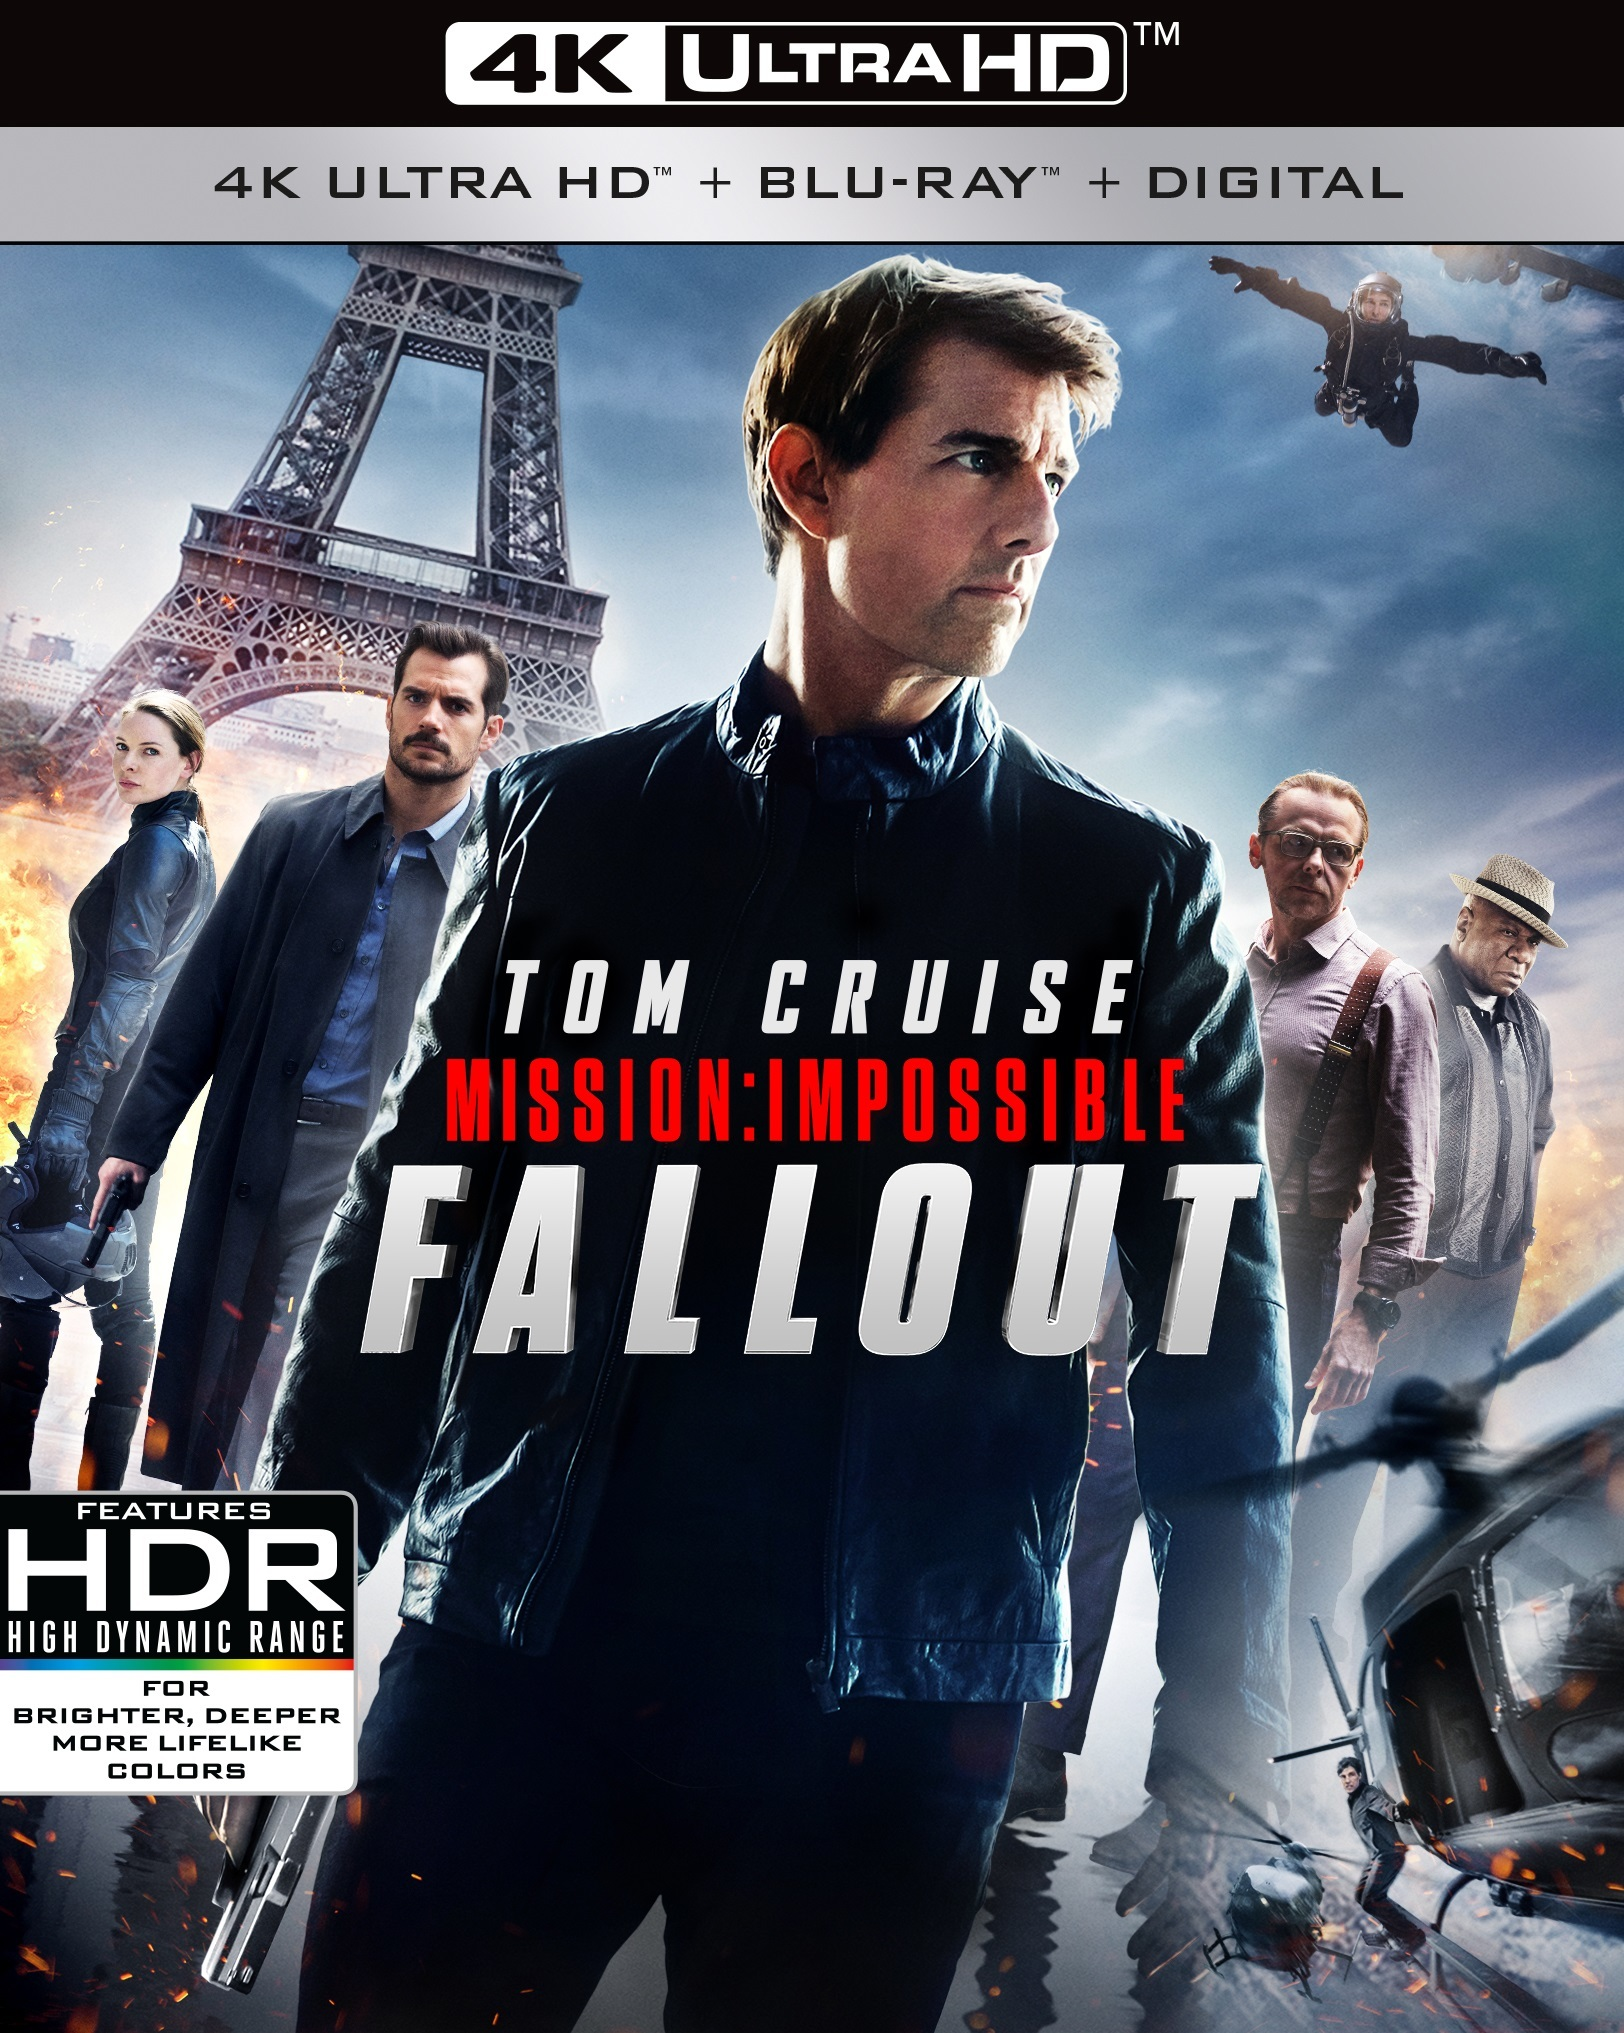 Mission: Impossible - Fallout 4K (2018) Ultra HD Blu-ray